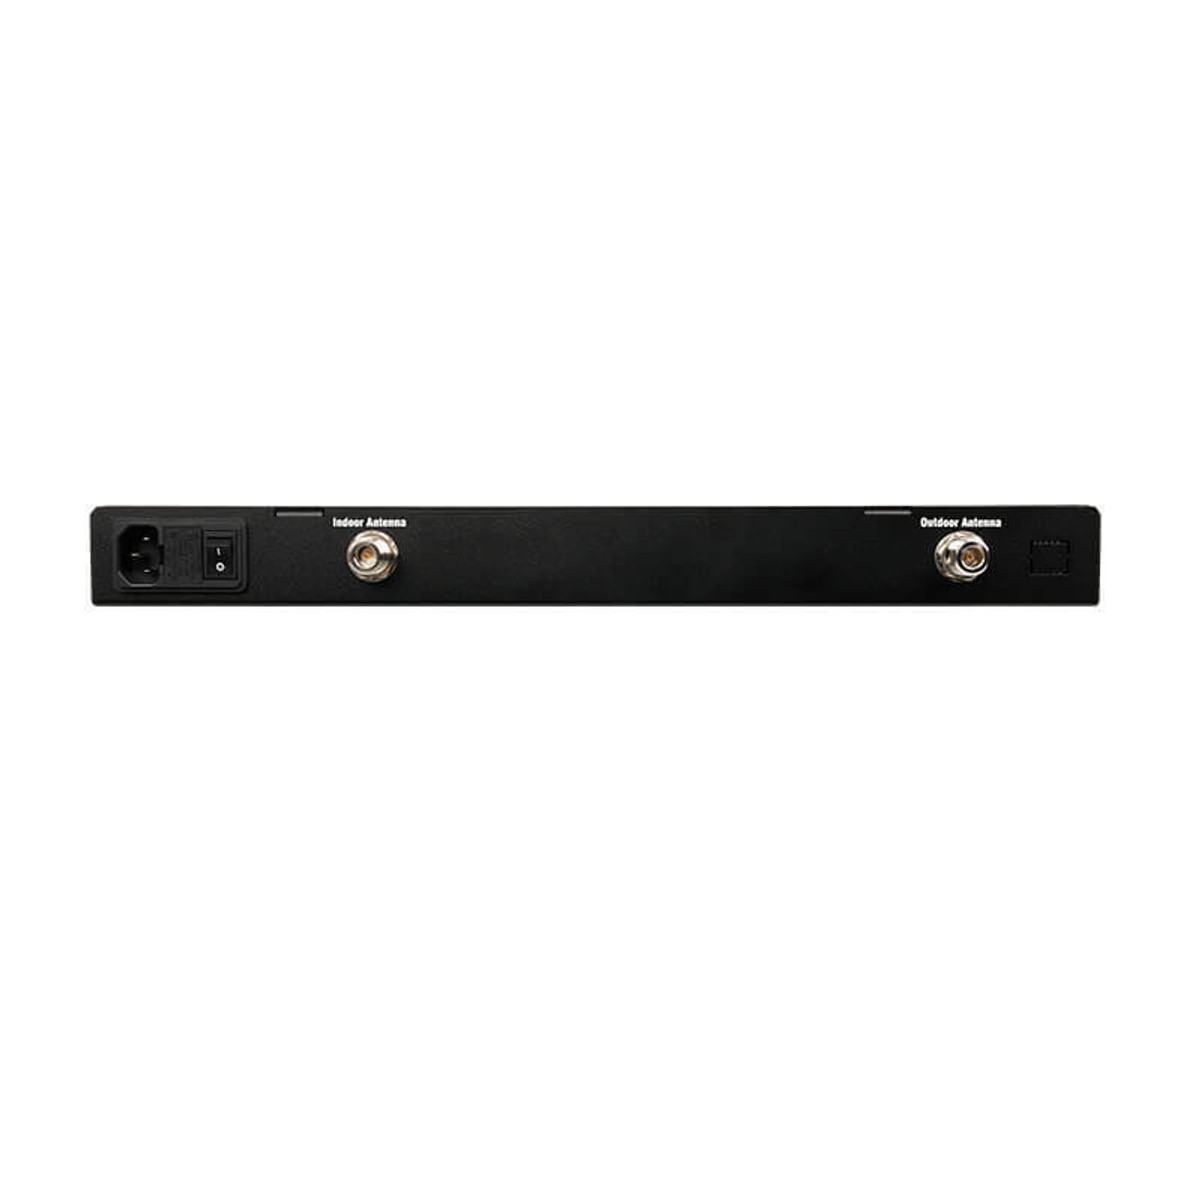 Wilson Pro Wilson Pro 1000R Rack-Mounted Commercial Booster or 460237